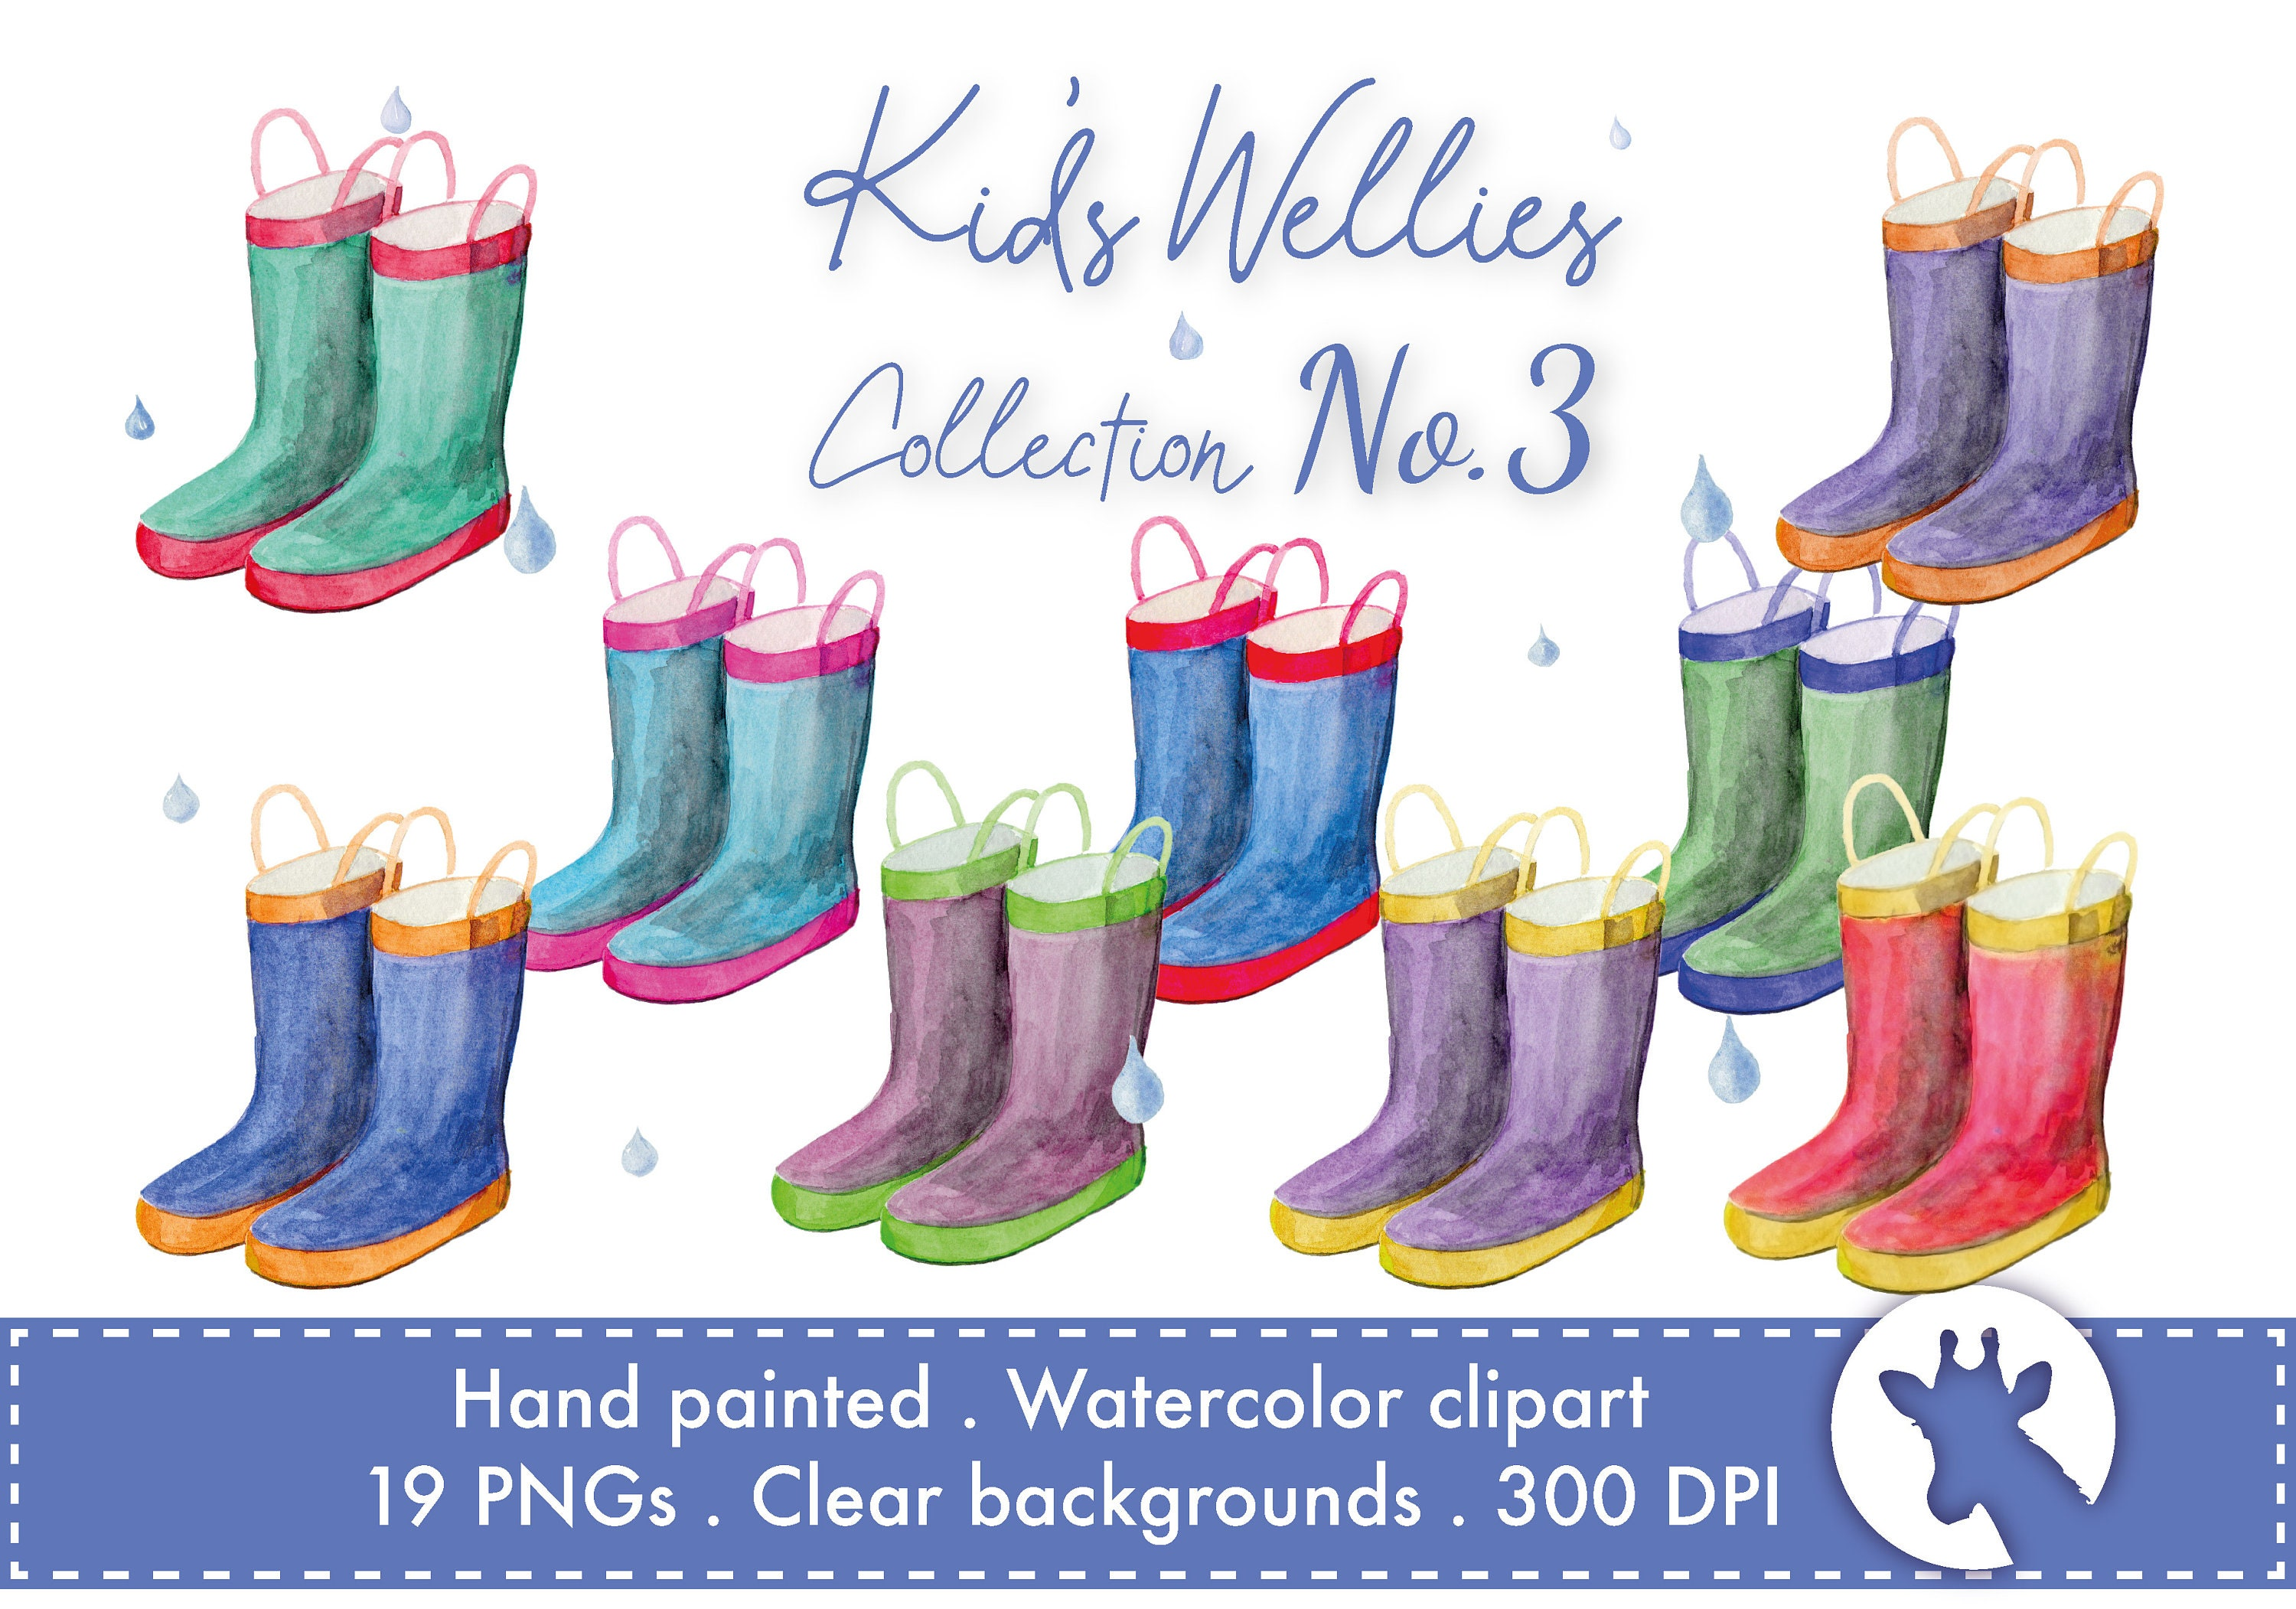 Wellies Personalised Framed Welly Boot Family Print Wellingtons Rain boot